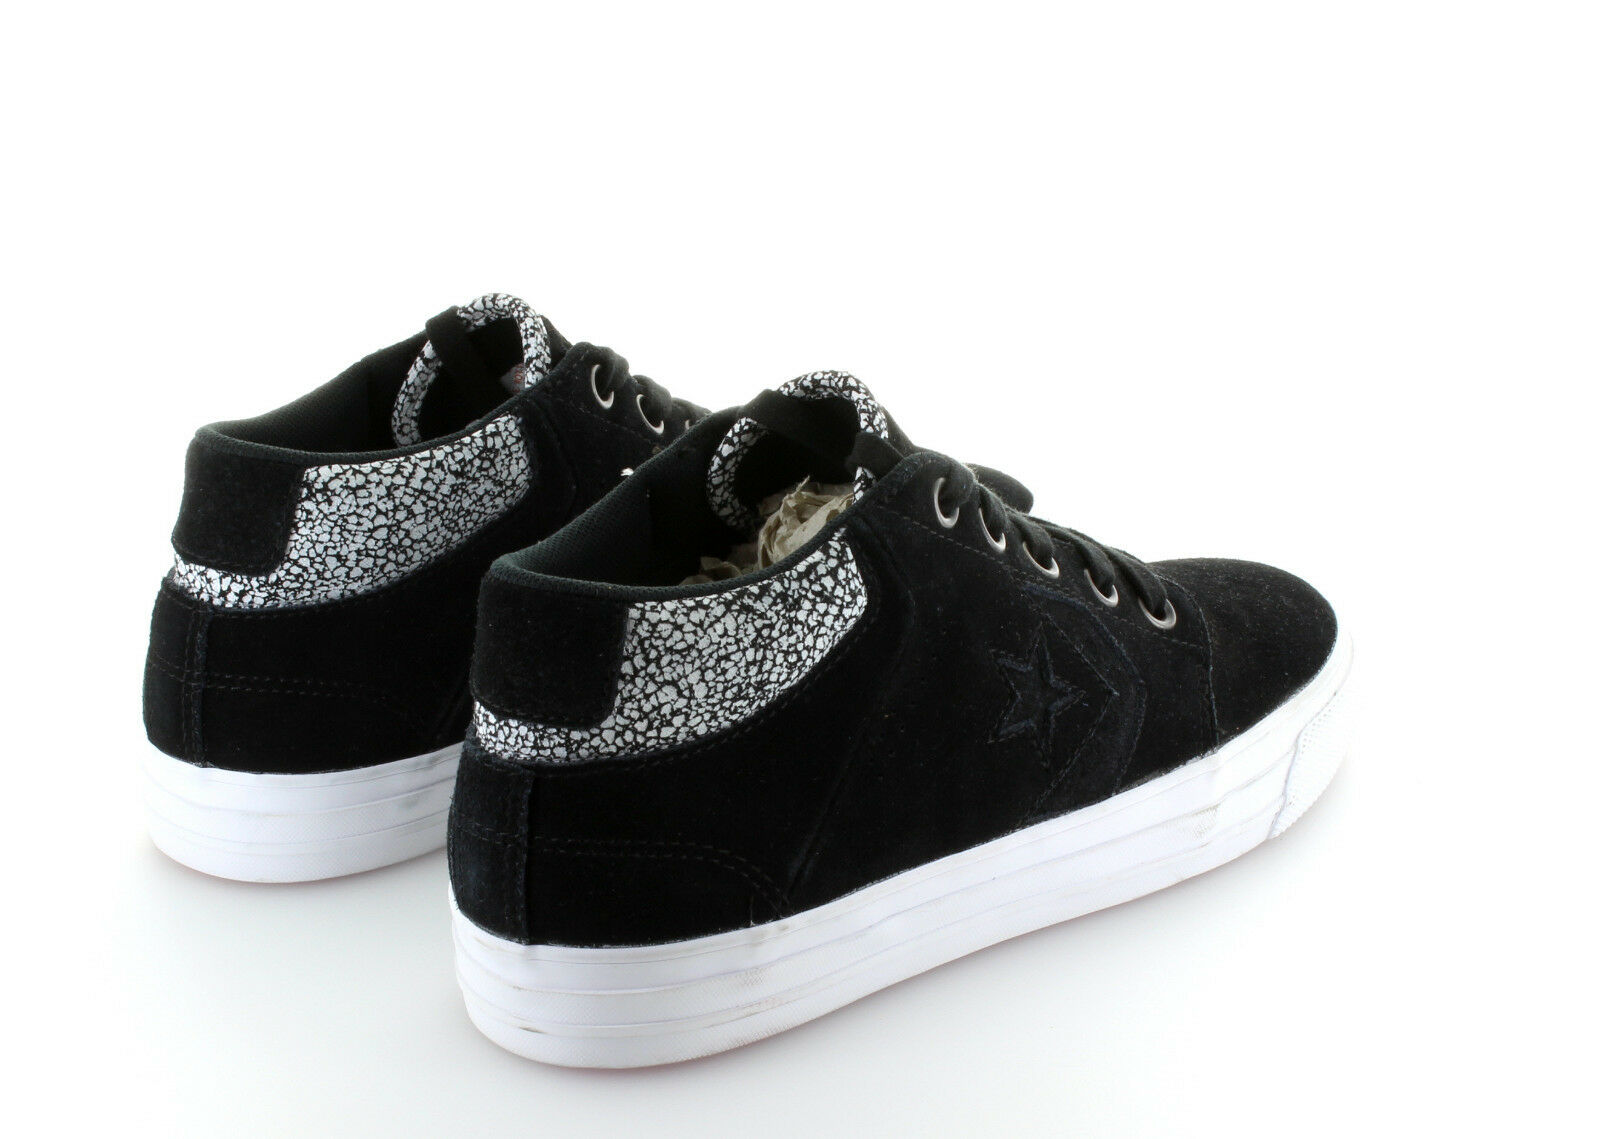 Converse Cons Tre Star Mid Negro Suede in Gr. 42,5 42,5 42,5 US 9 dd8f45